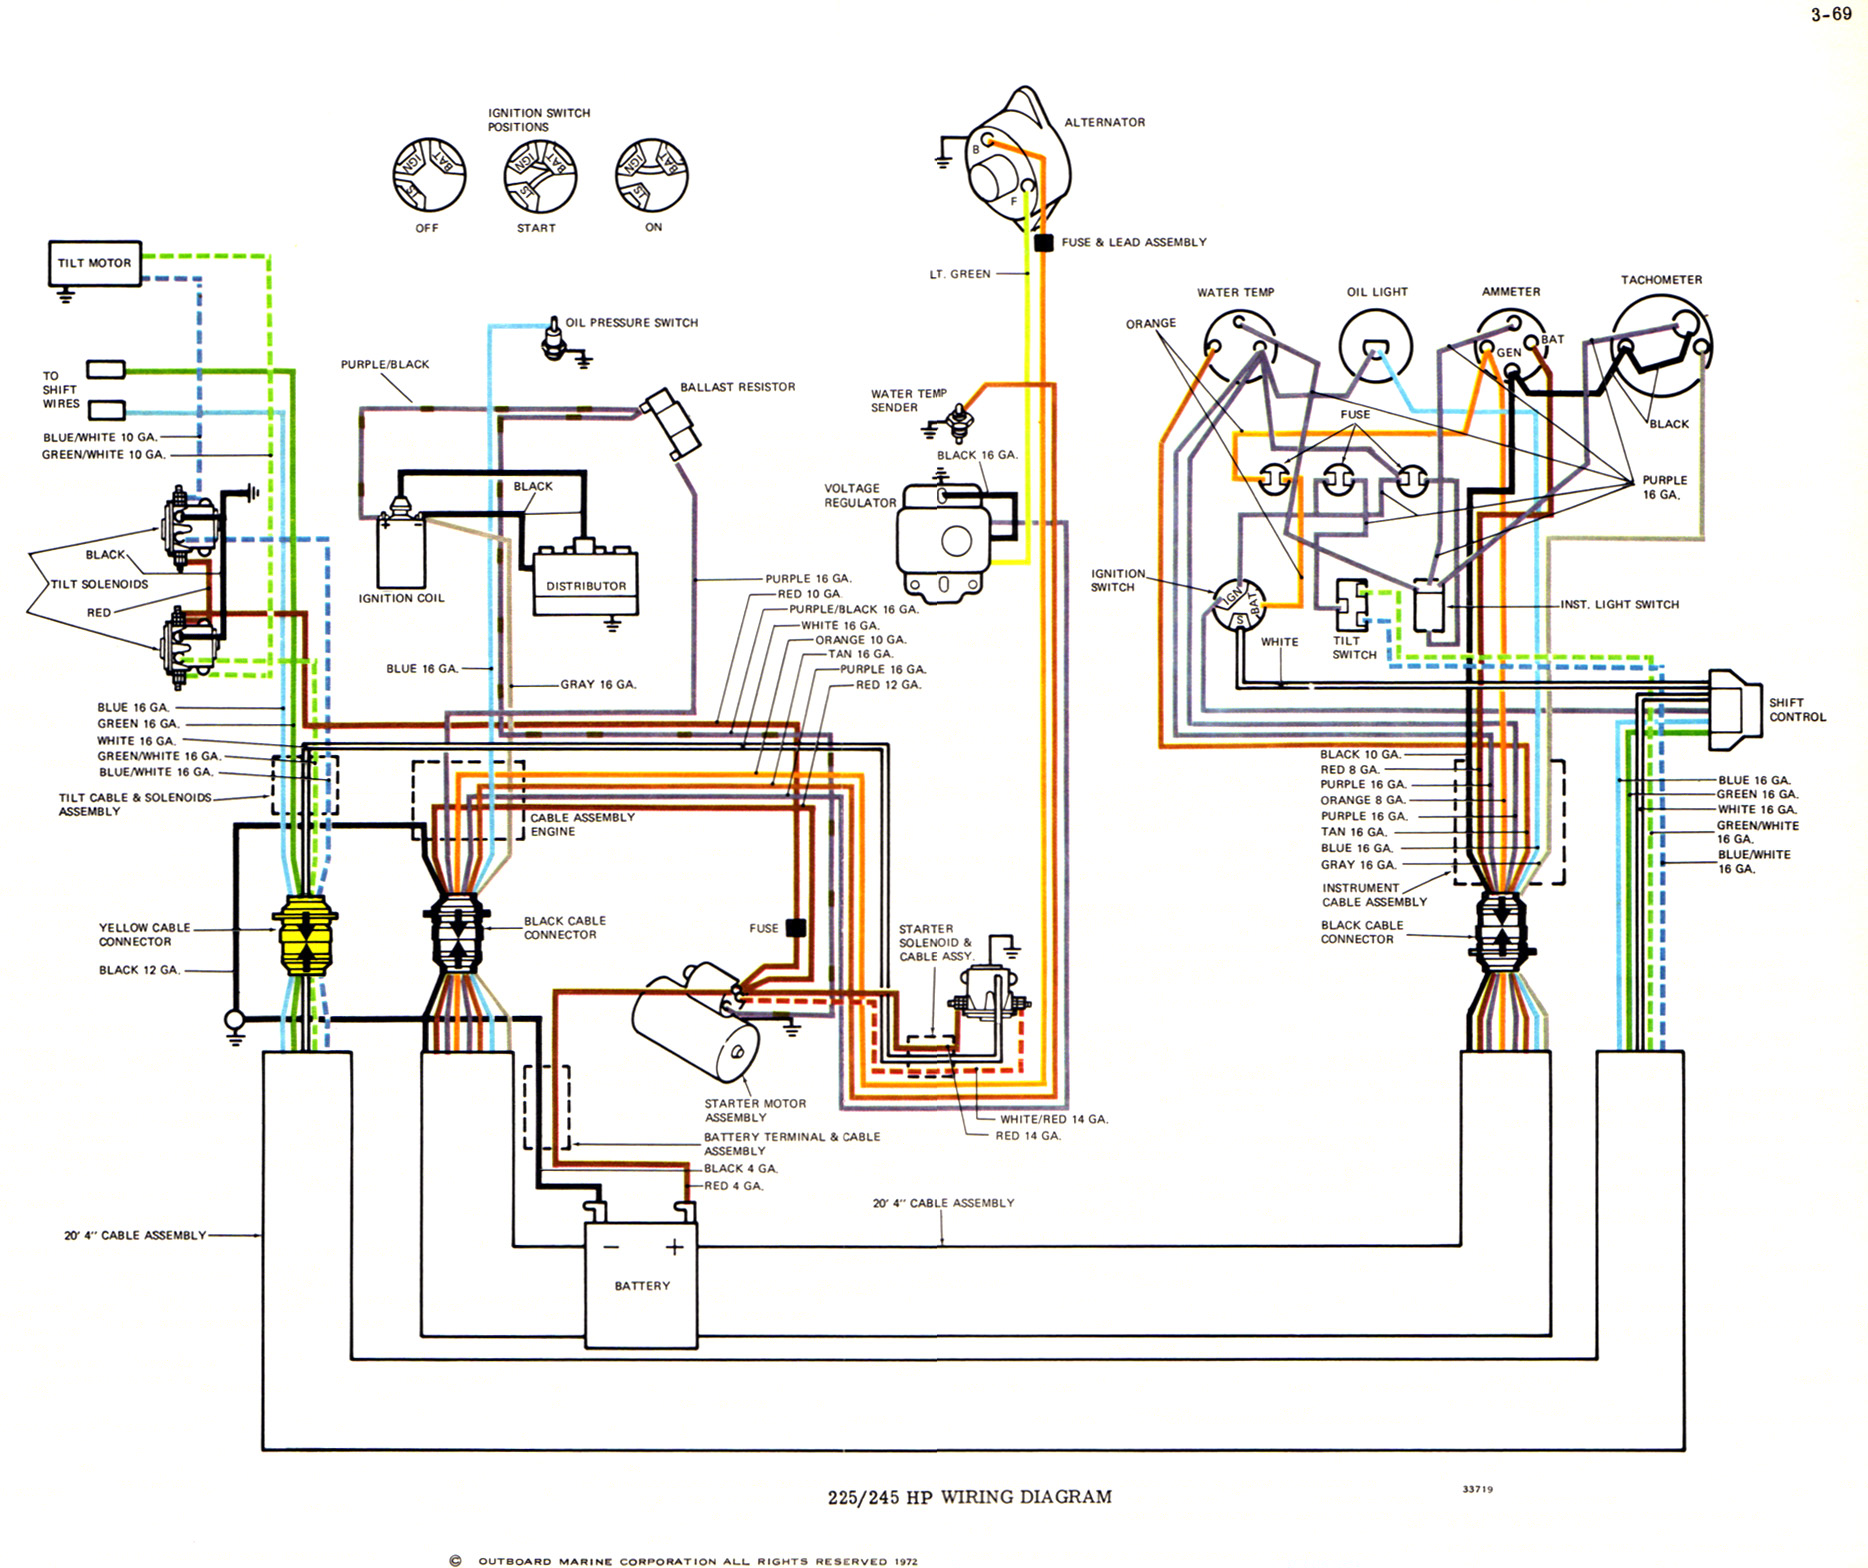 wiring diagram for humvee sunpro super tach 3 wiring 50 hp evinrude wiring diagram 35 evinrude [ 1868 x 1568 Pixel ]